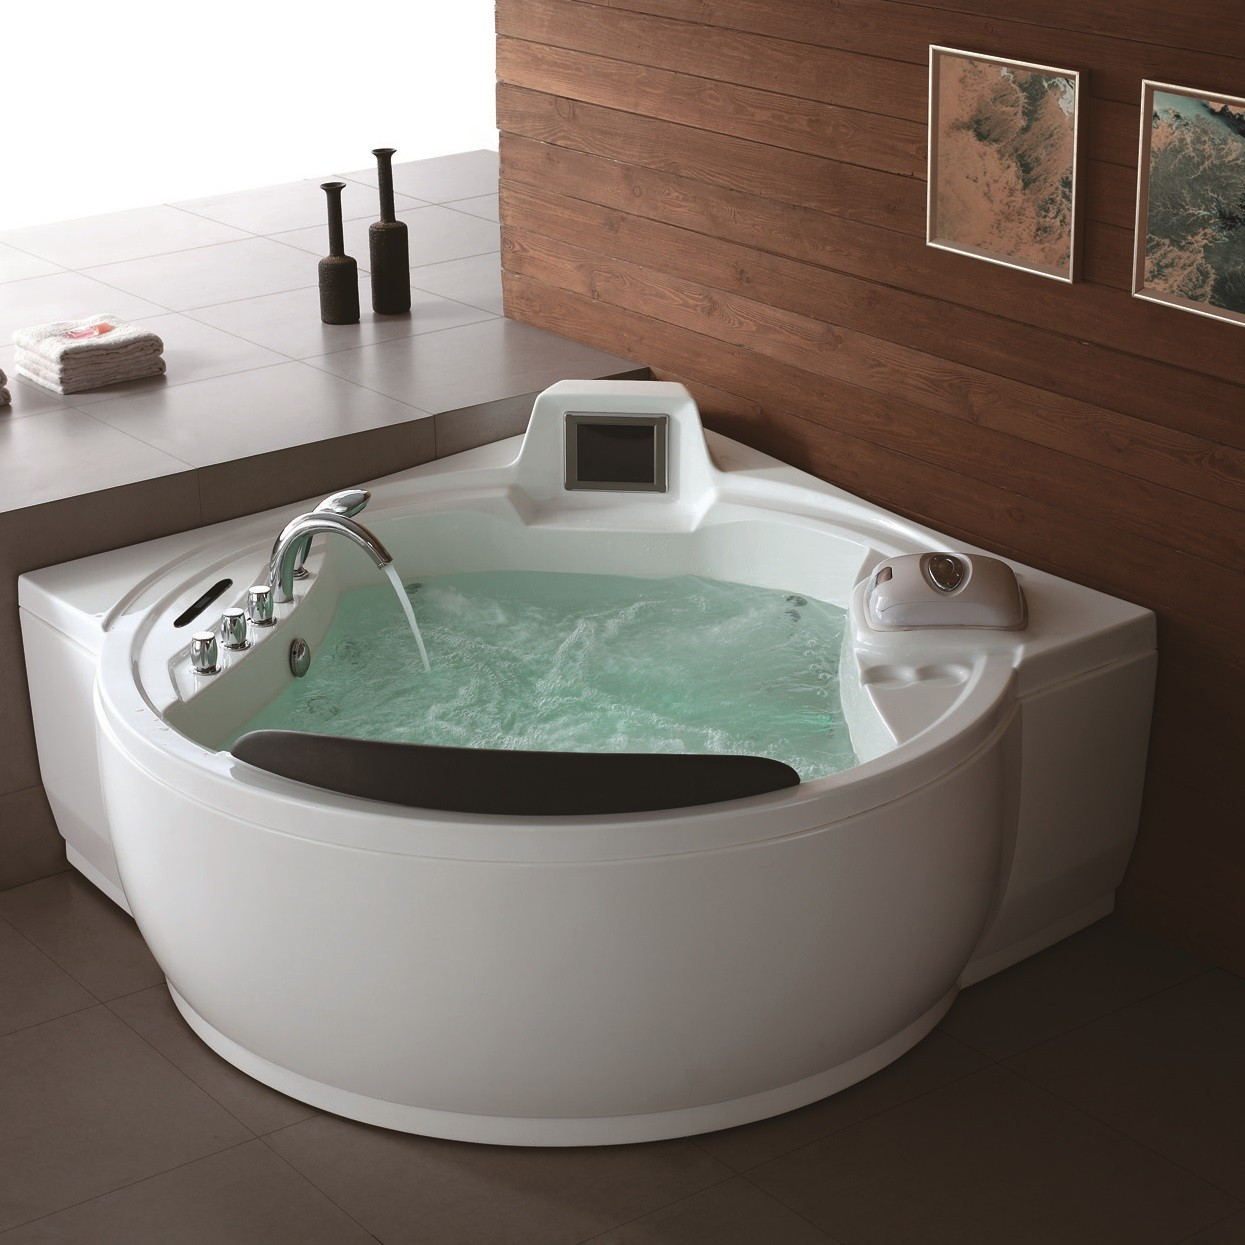 whirlpool bathtub. Freeport Luxury Whirlpool Tub